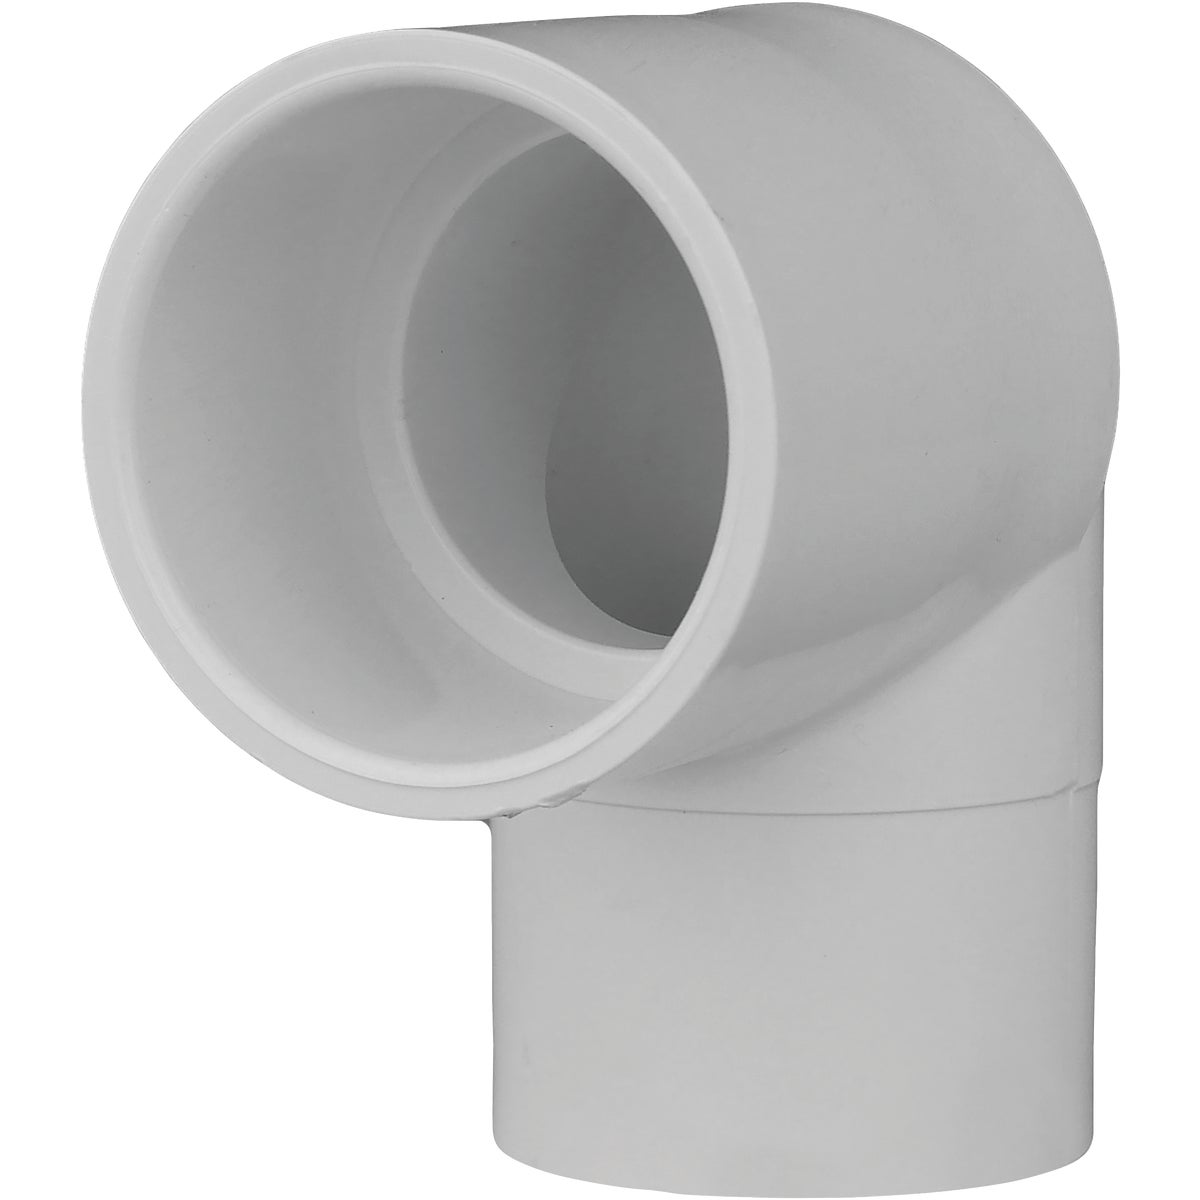 "1-1/2"" SXSP 90D ST ELBOW - 32915 by Genova Inc"